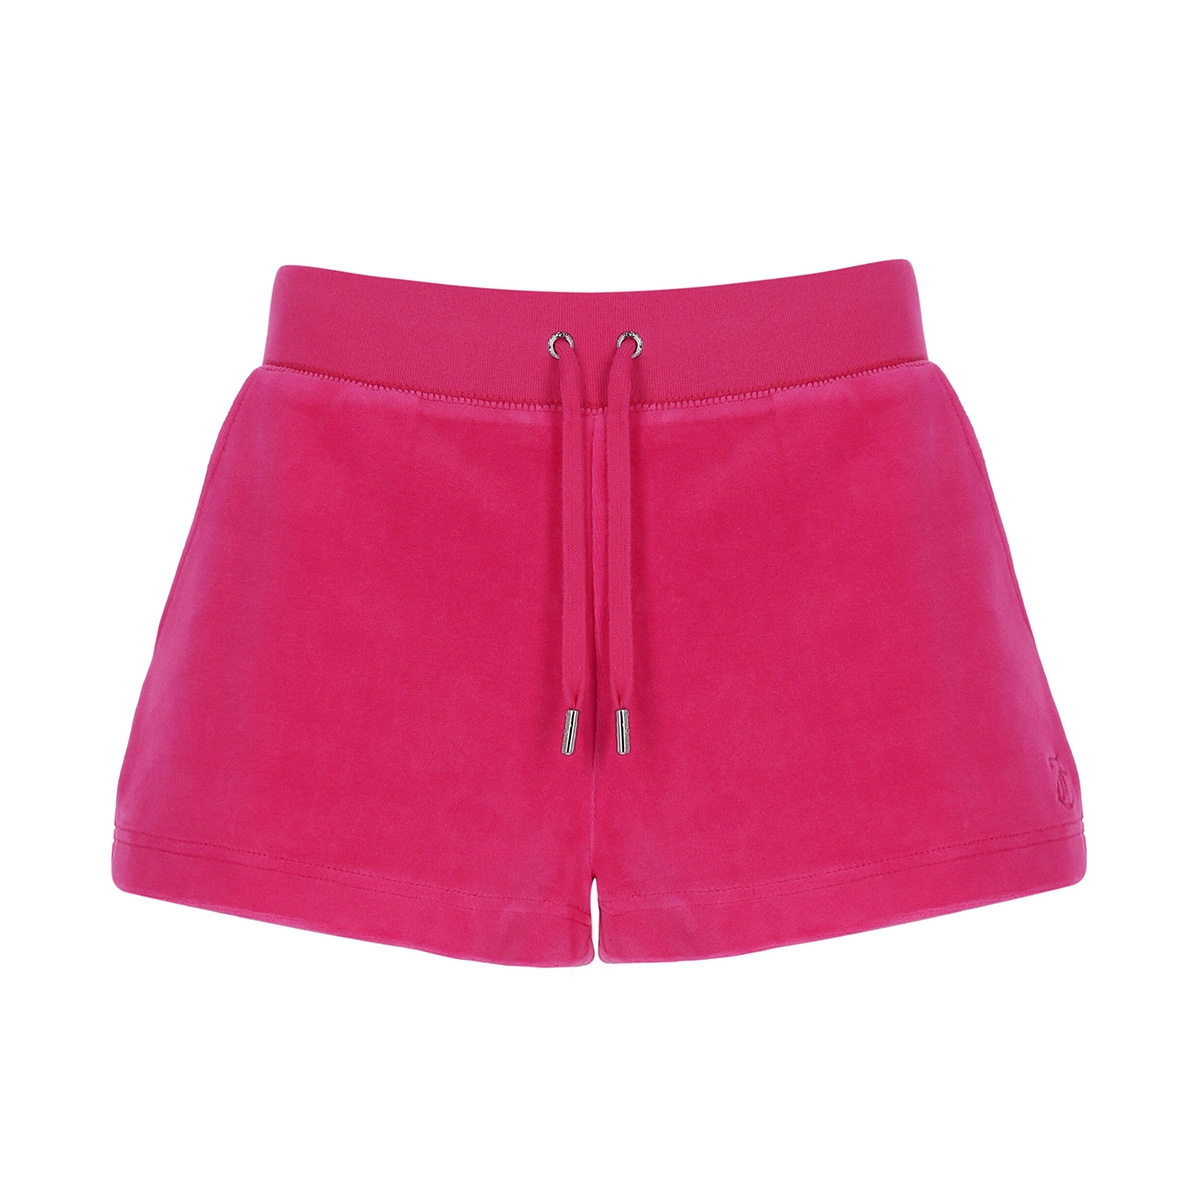 Juicy Couture - Shorts Eve Cotton Rich Rasberry